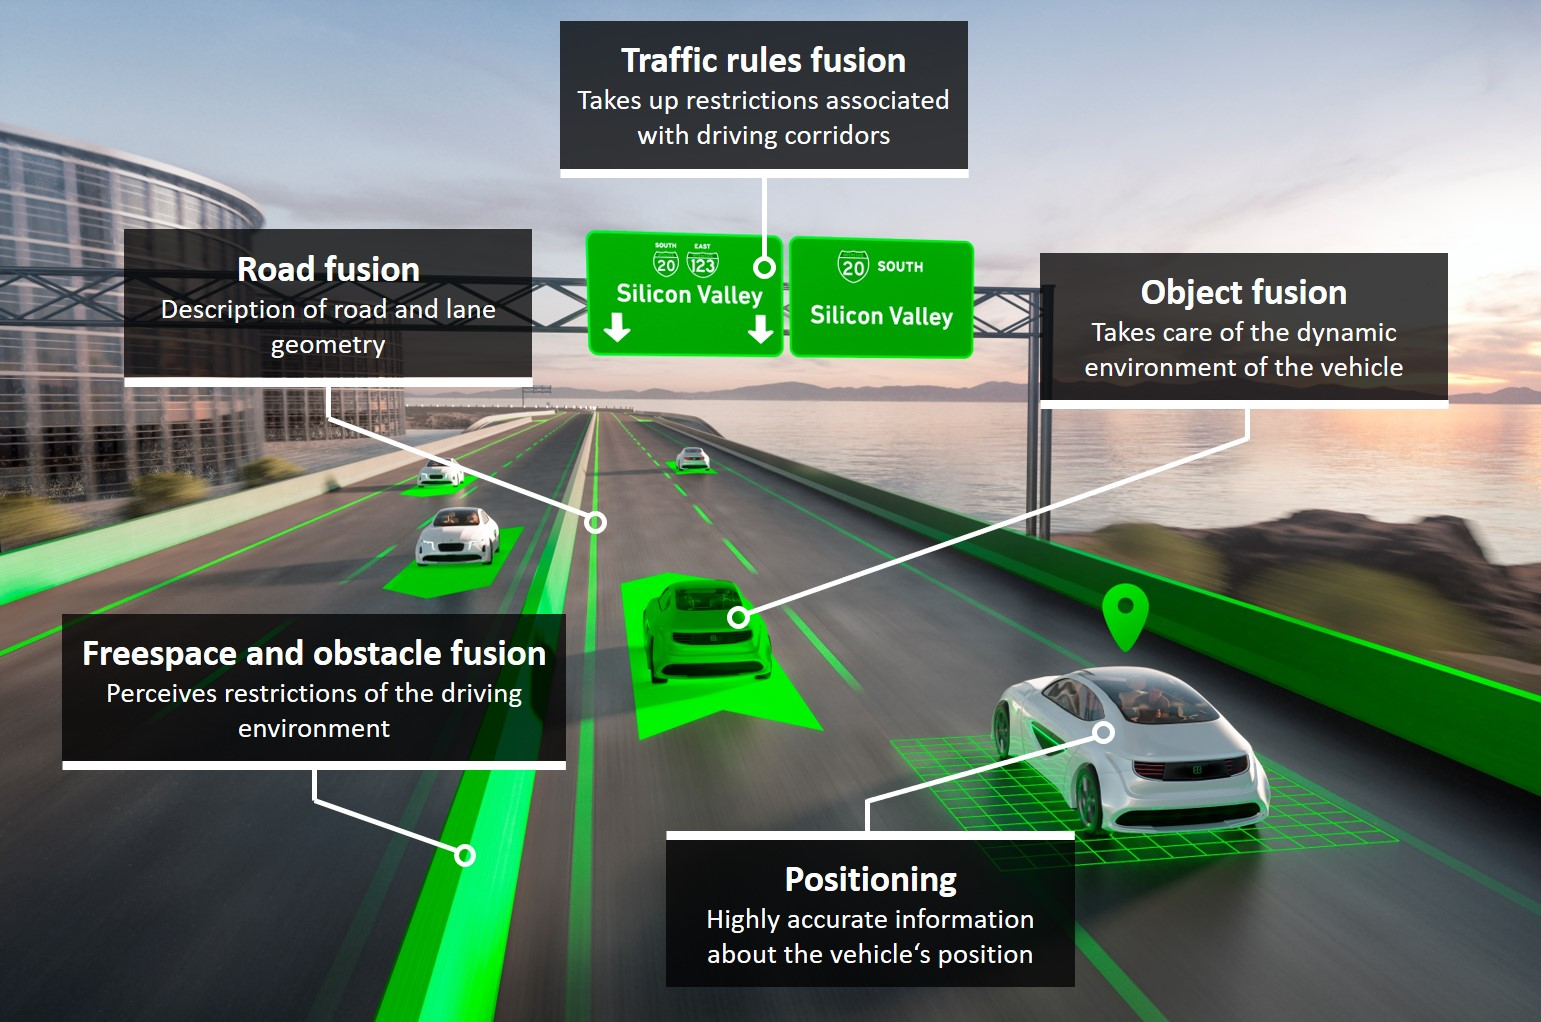 Object fusion, Freespace and obstacle fusion, Positioning, Road fusion, Traffic rules fusion